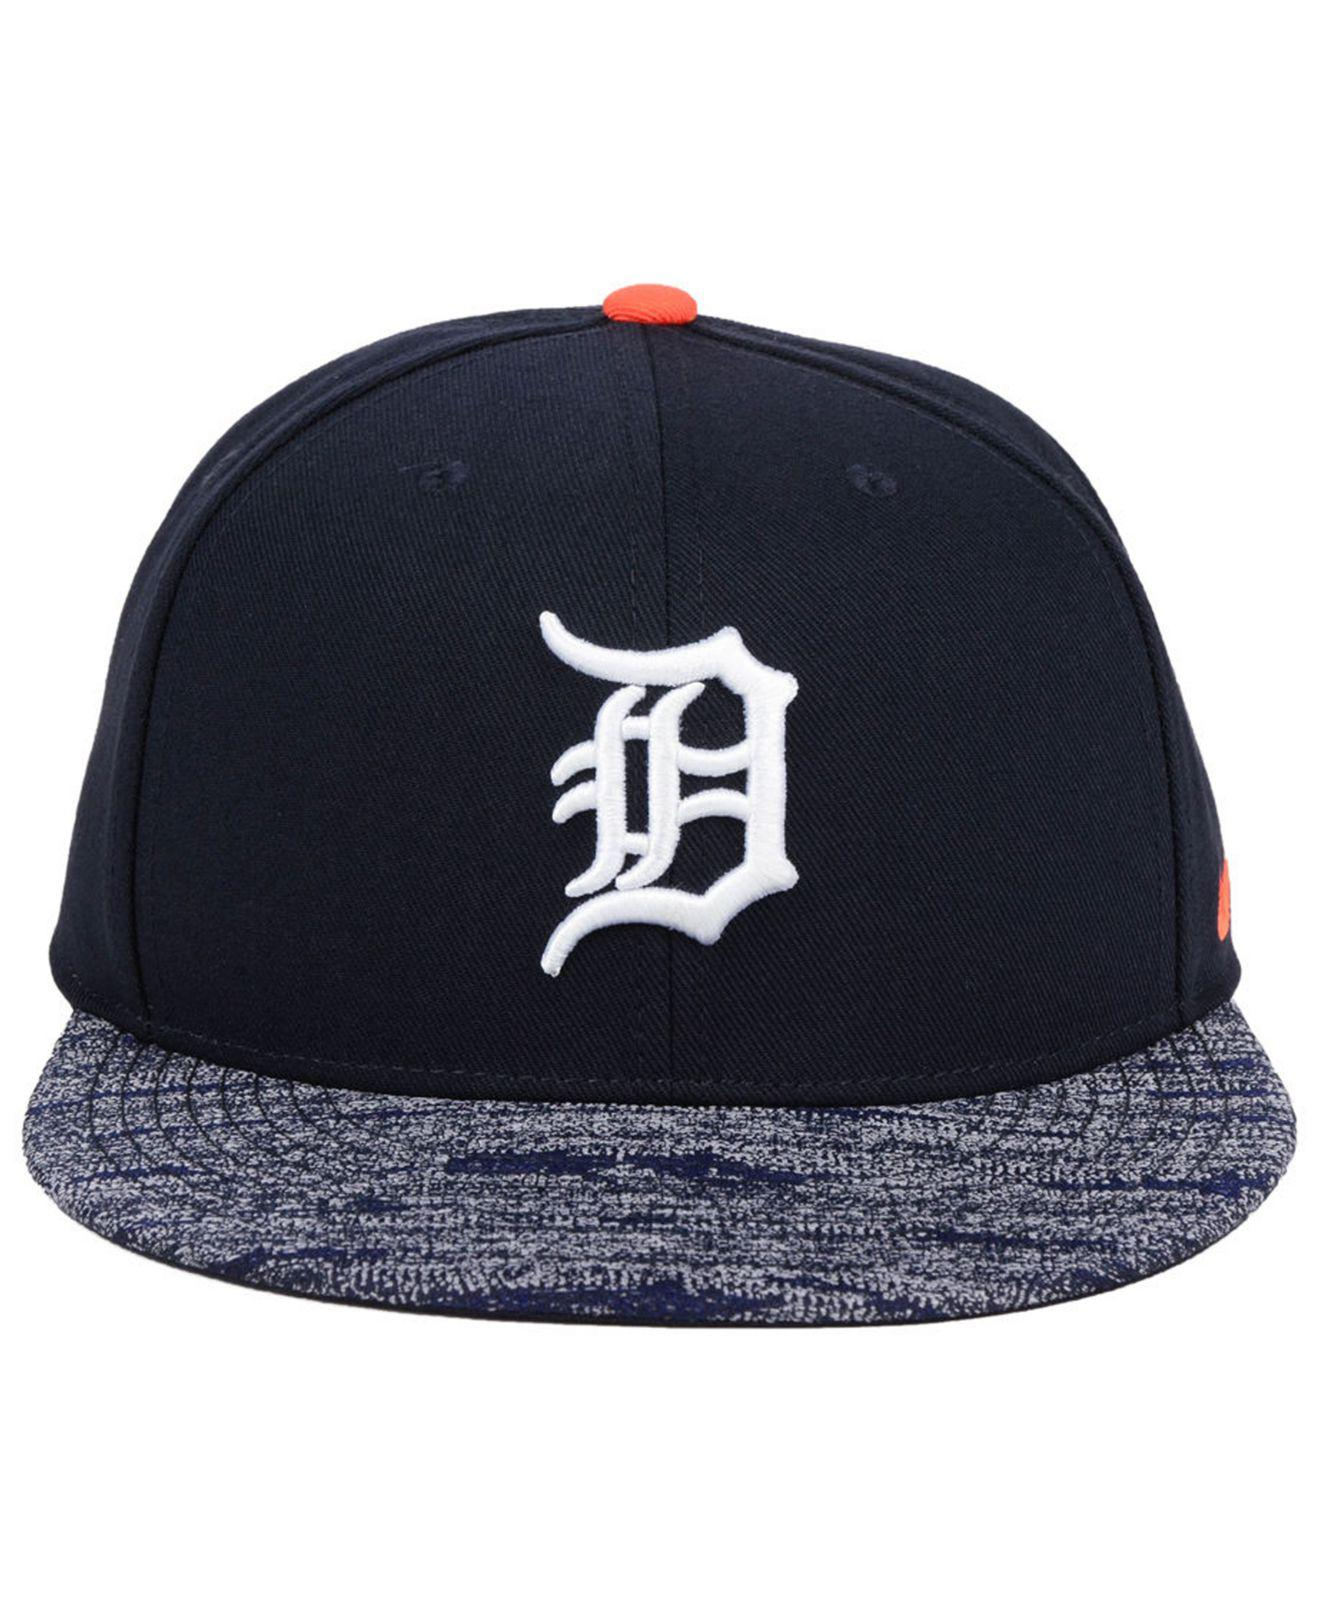 13026a8f9e1 ... release date lyst nike detroit tigers reverse new day snapback cap in  blue for men f6eb0